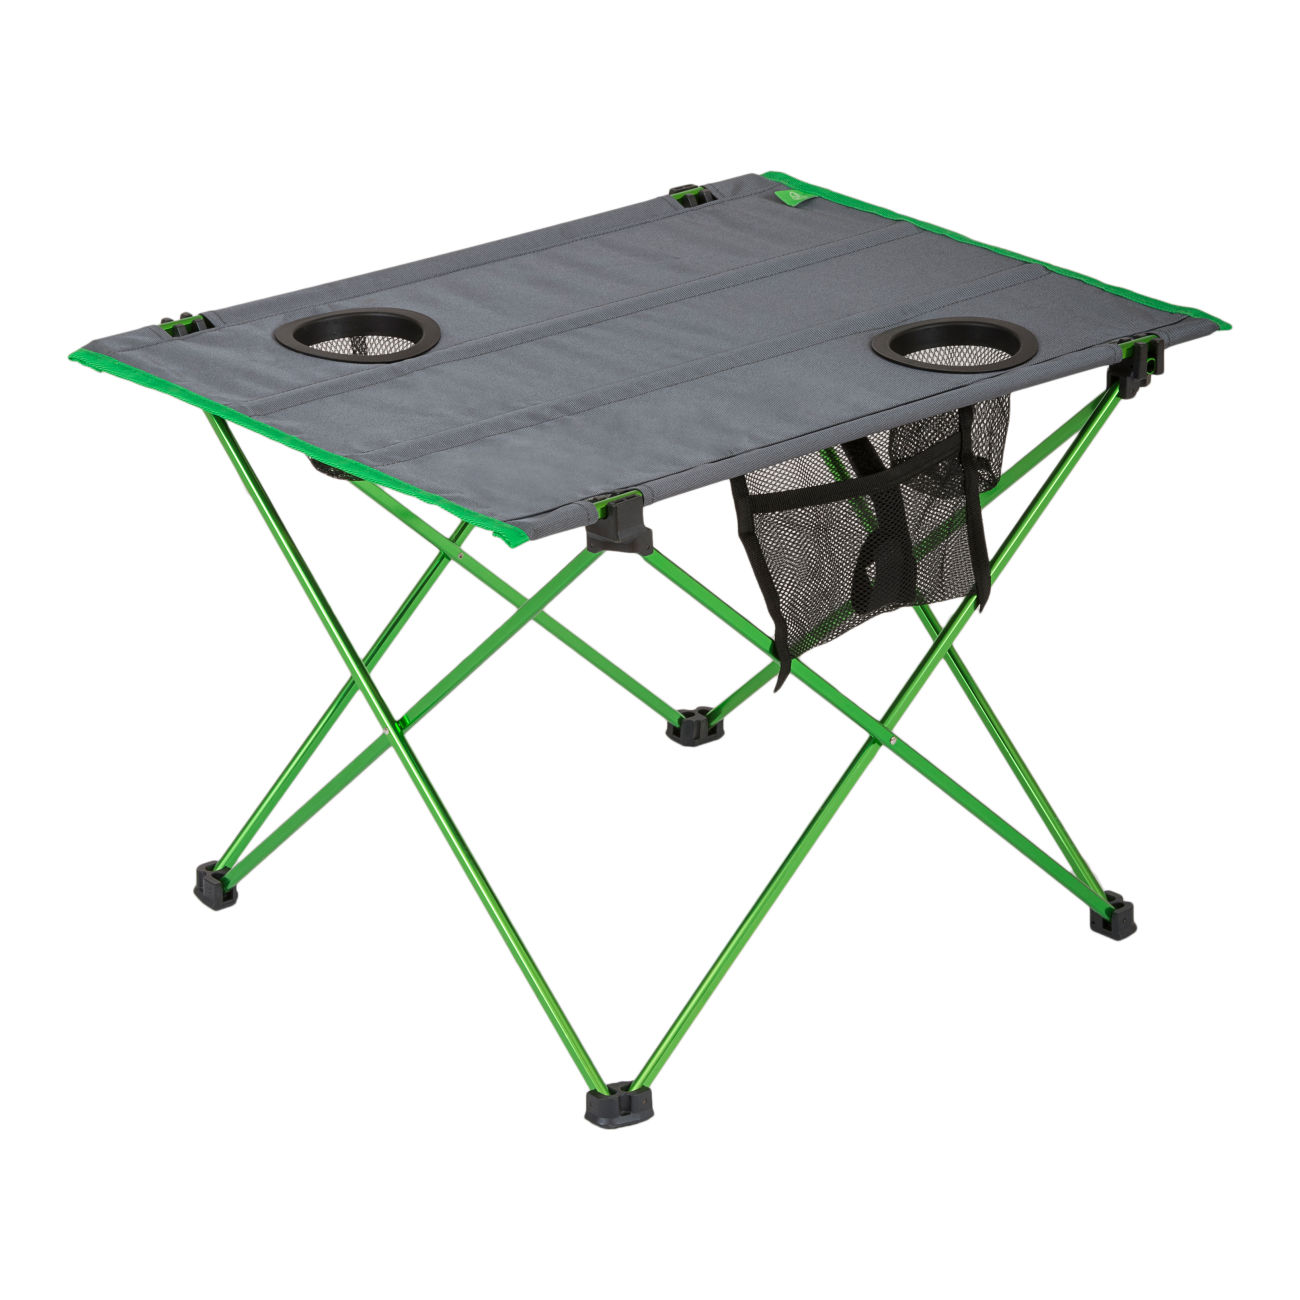 Highlander Ayr - Lightweight Folding Table